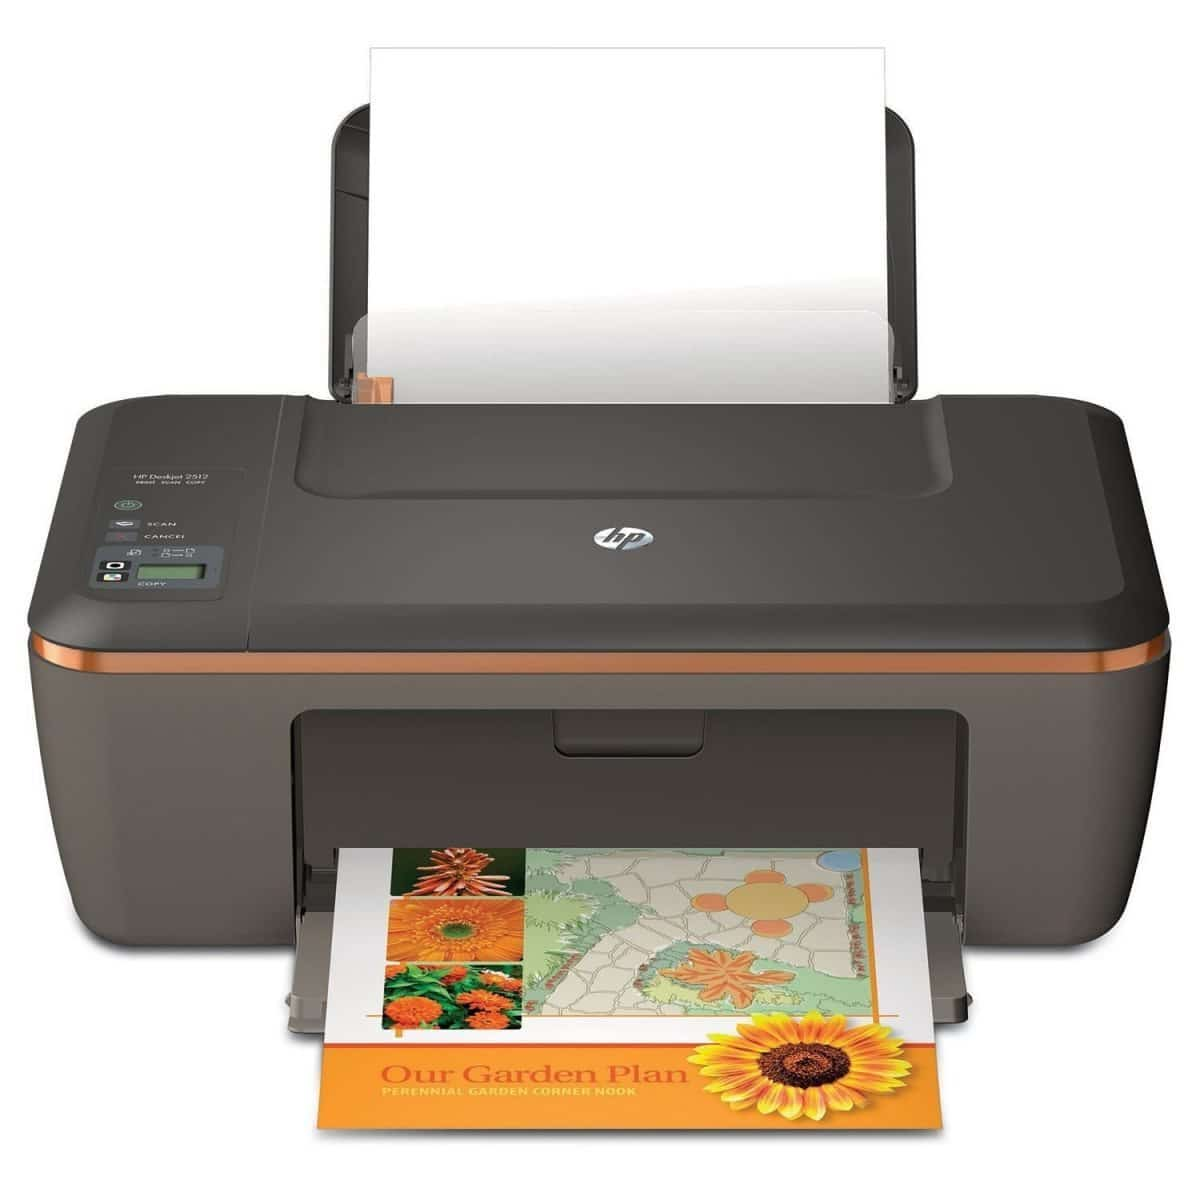 The Top 5 Inkjet Printers on Amazon for Under $100 - The ...